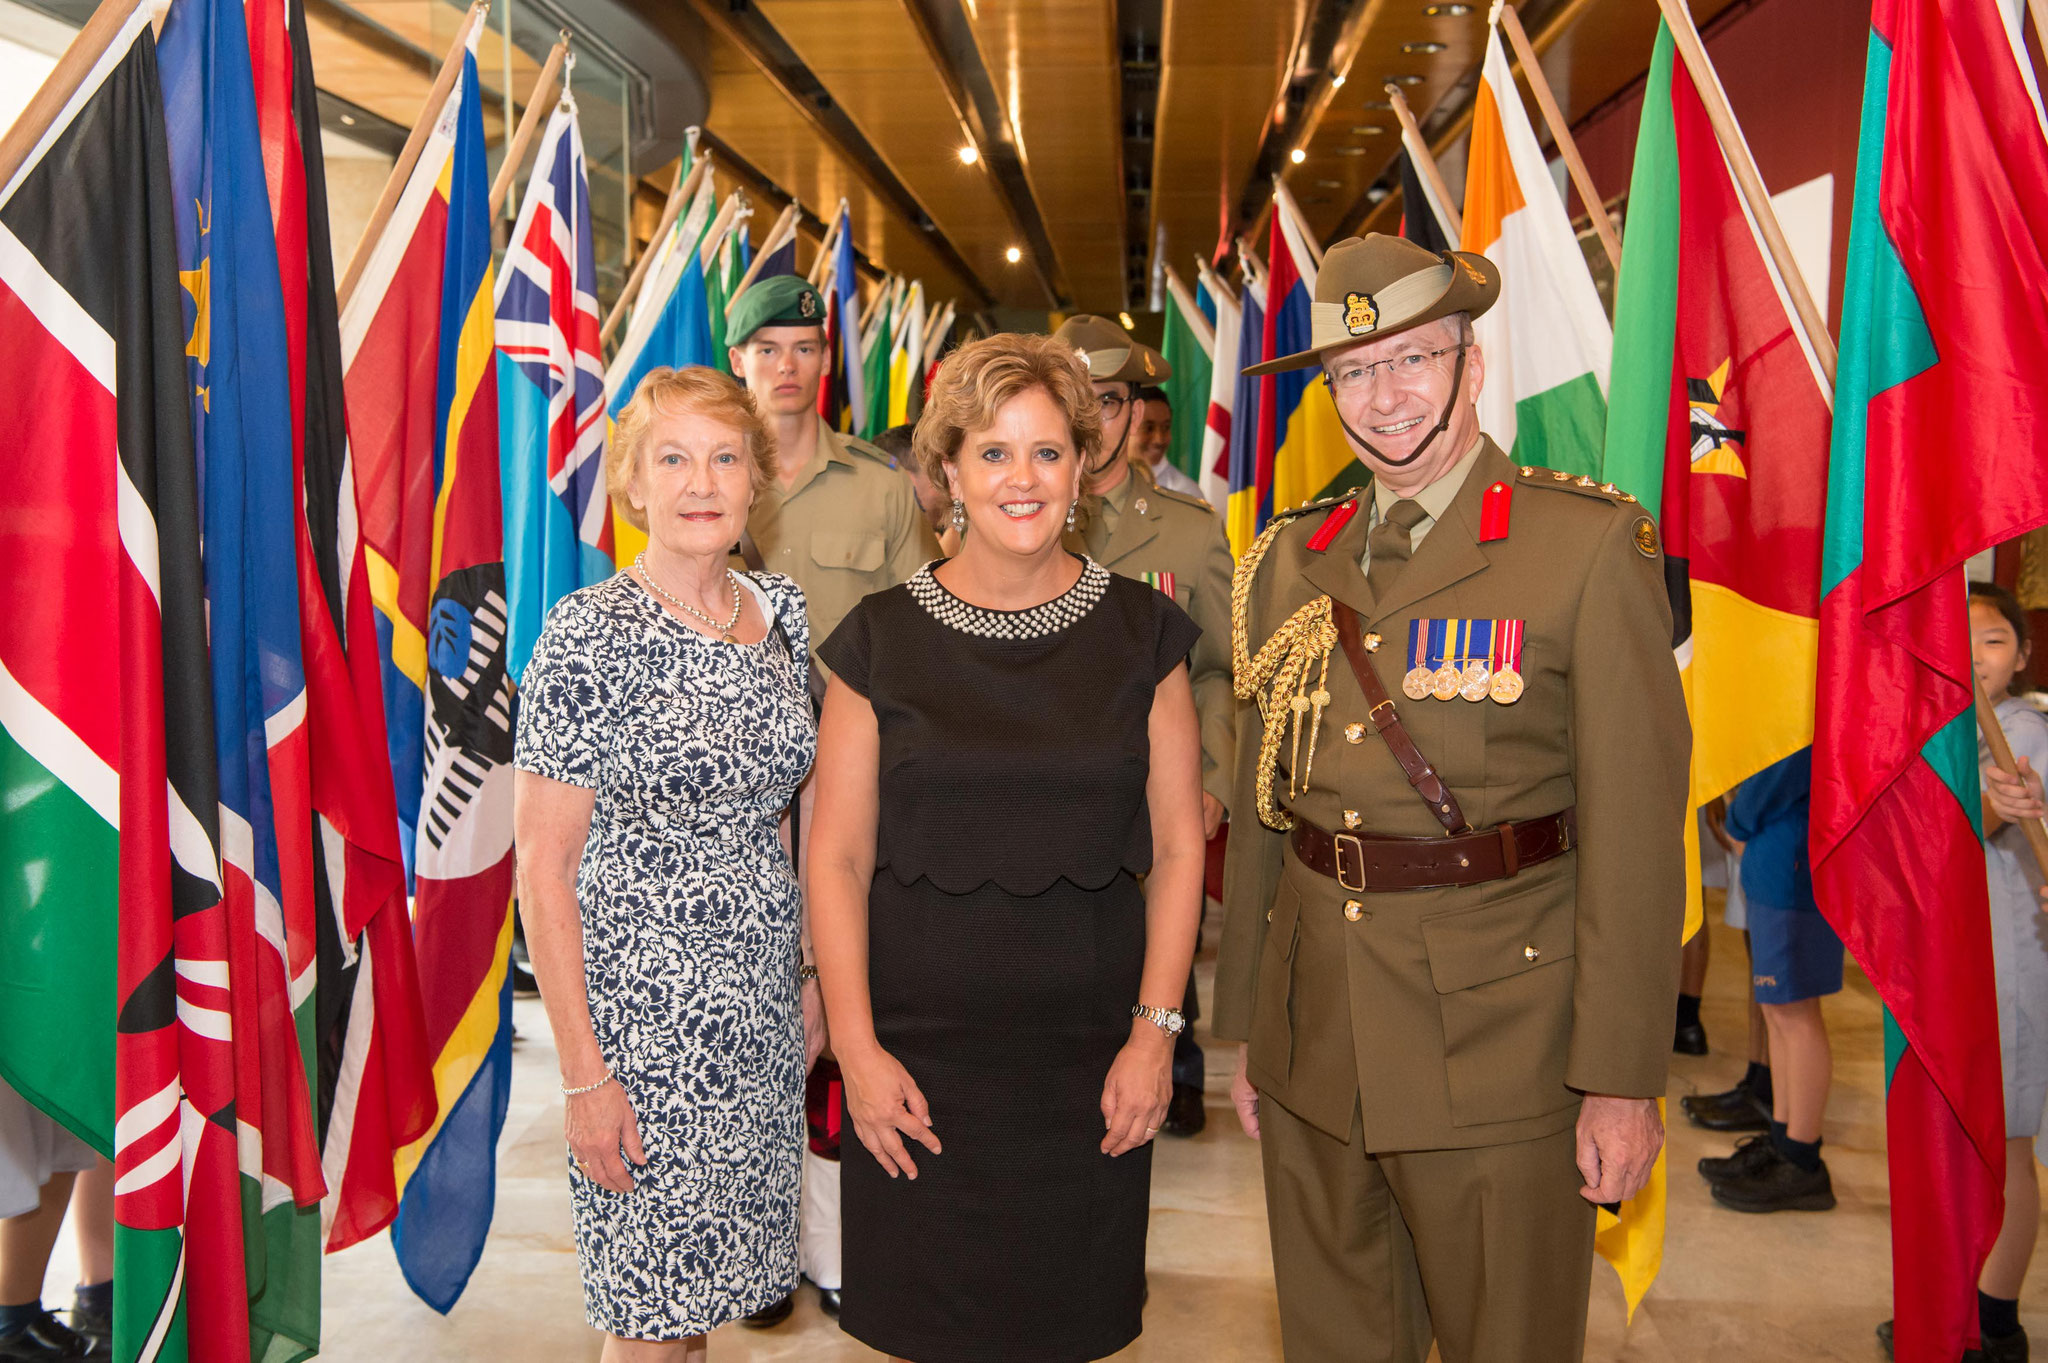 Janet Stewart (left); Her Excellency CMG and Michael Miller RFD with the flags of the 54 Commonwealth of Nations flags